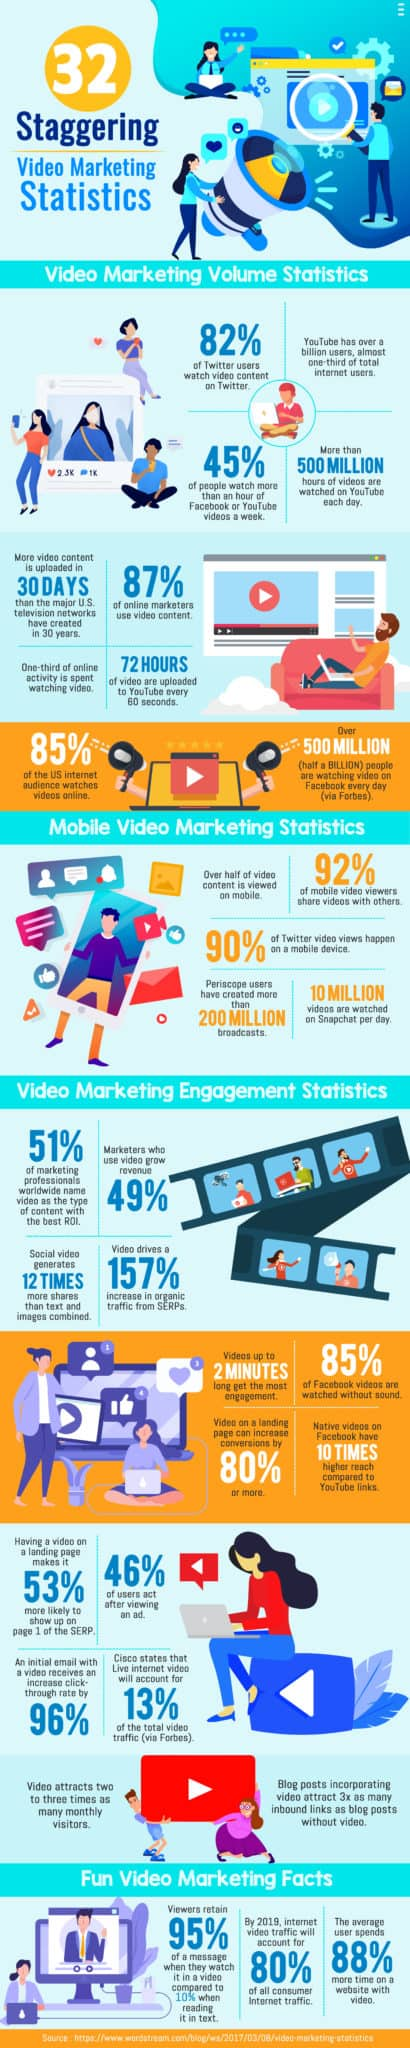 video marketing stats 2019